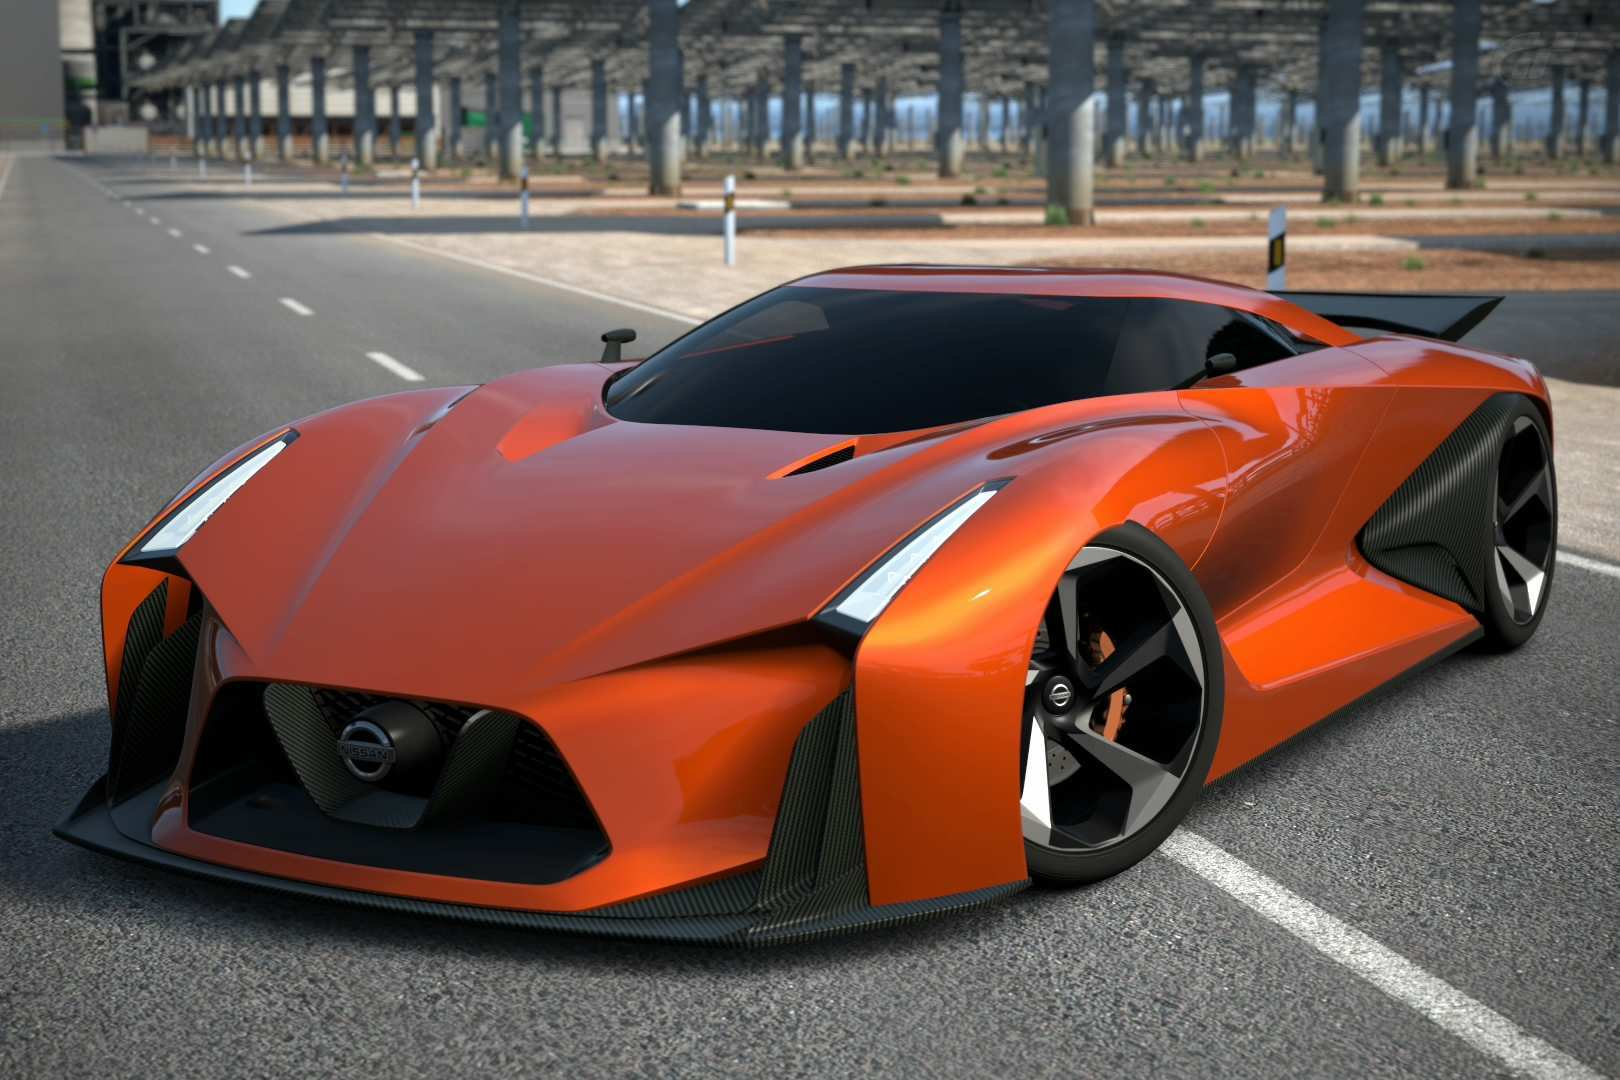 72 Concept of Nissan 2020 Gran Turismo Exterior for Nissan 2020 Gran Turismo